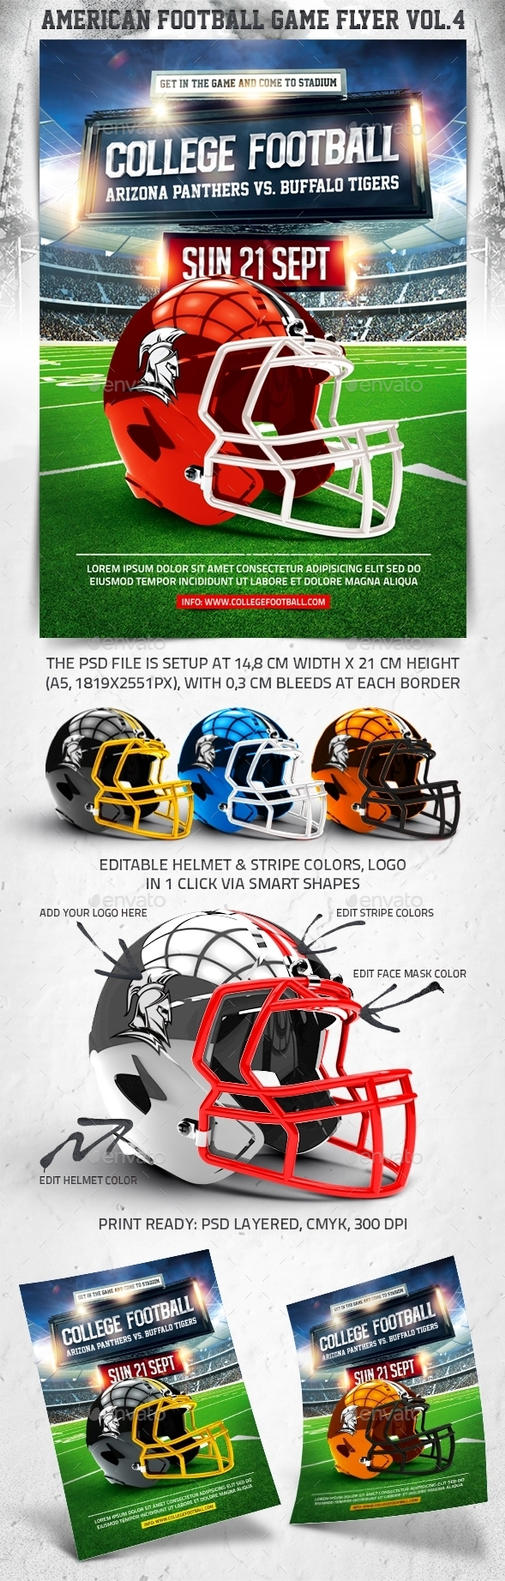 American Football Game Flyer vol.4, PSD Template by 4ustudio